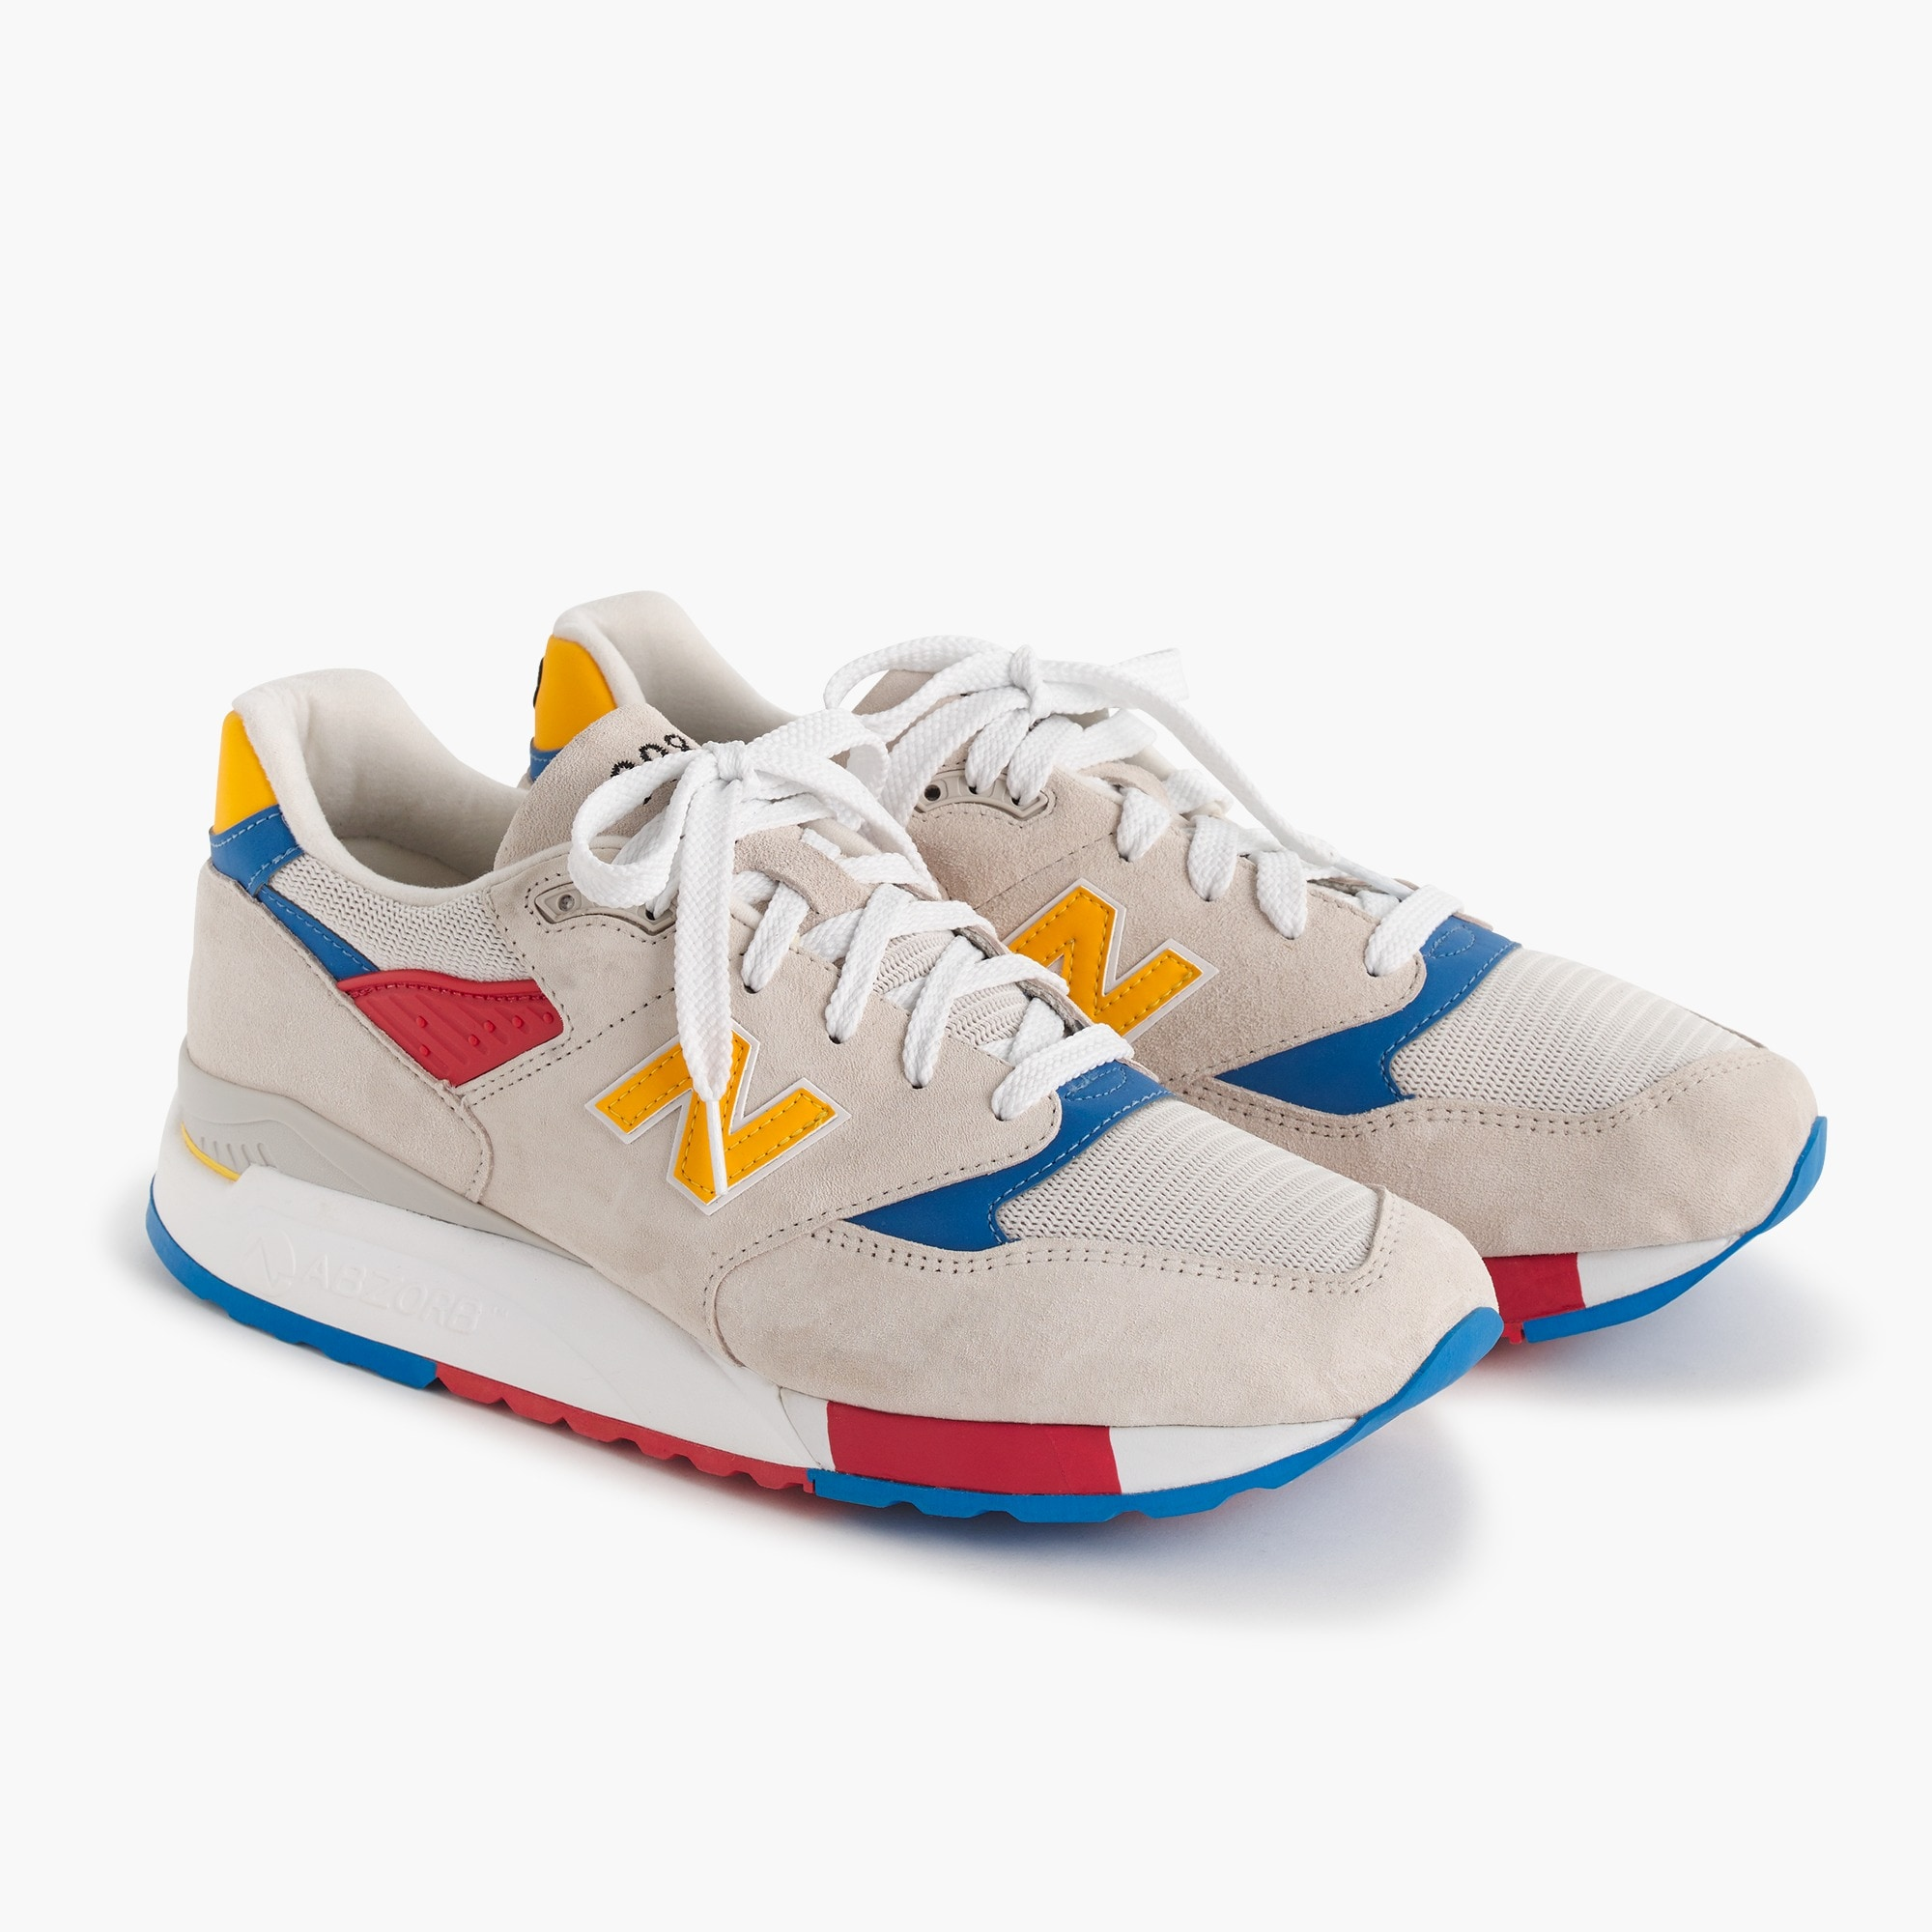 men's new balance® for j.crew 998 beach ball sneakers - men's footwear